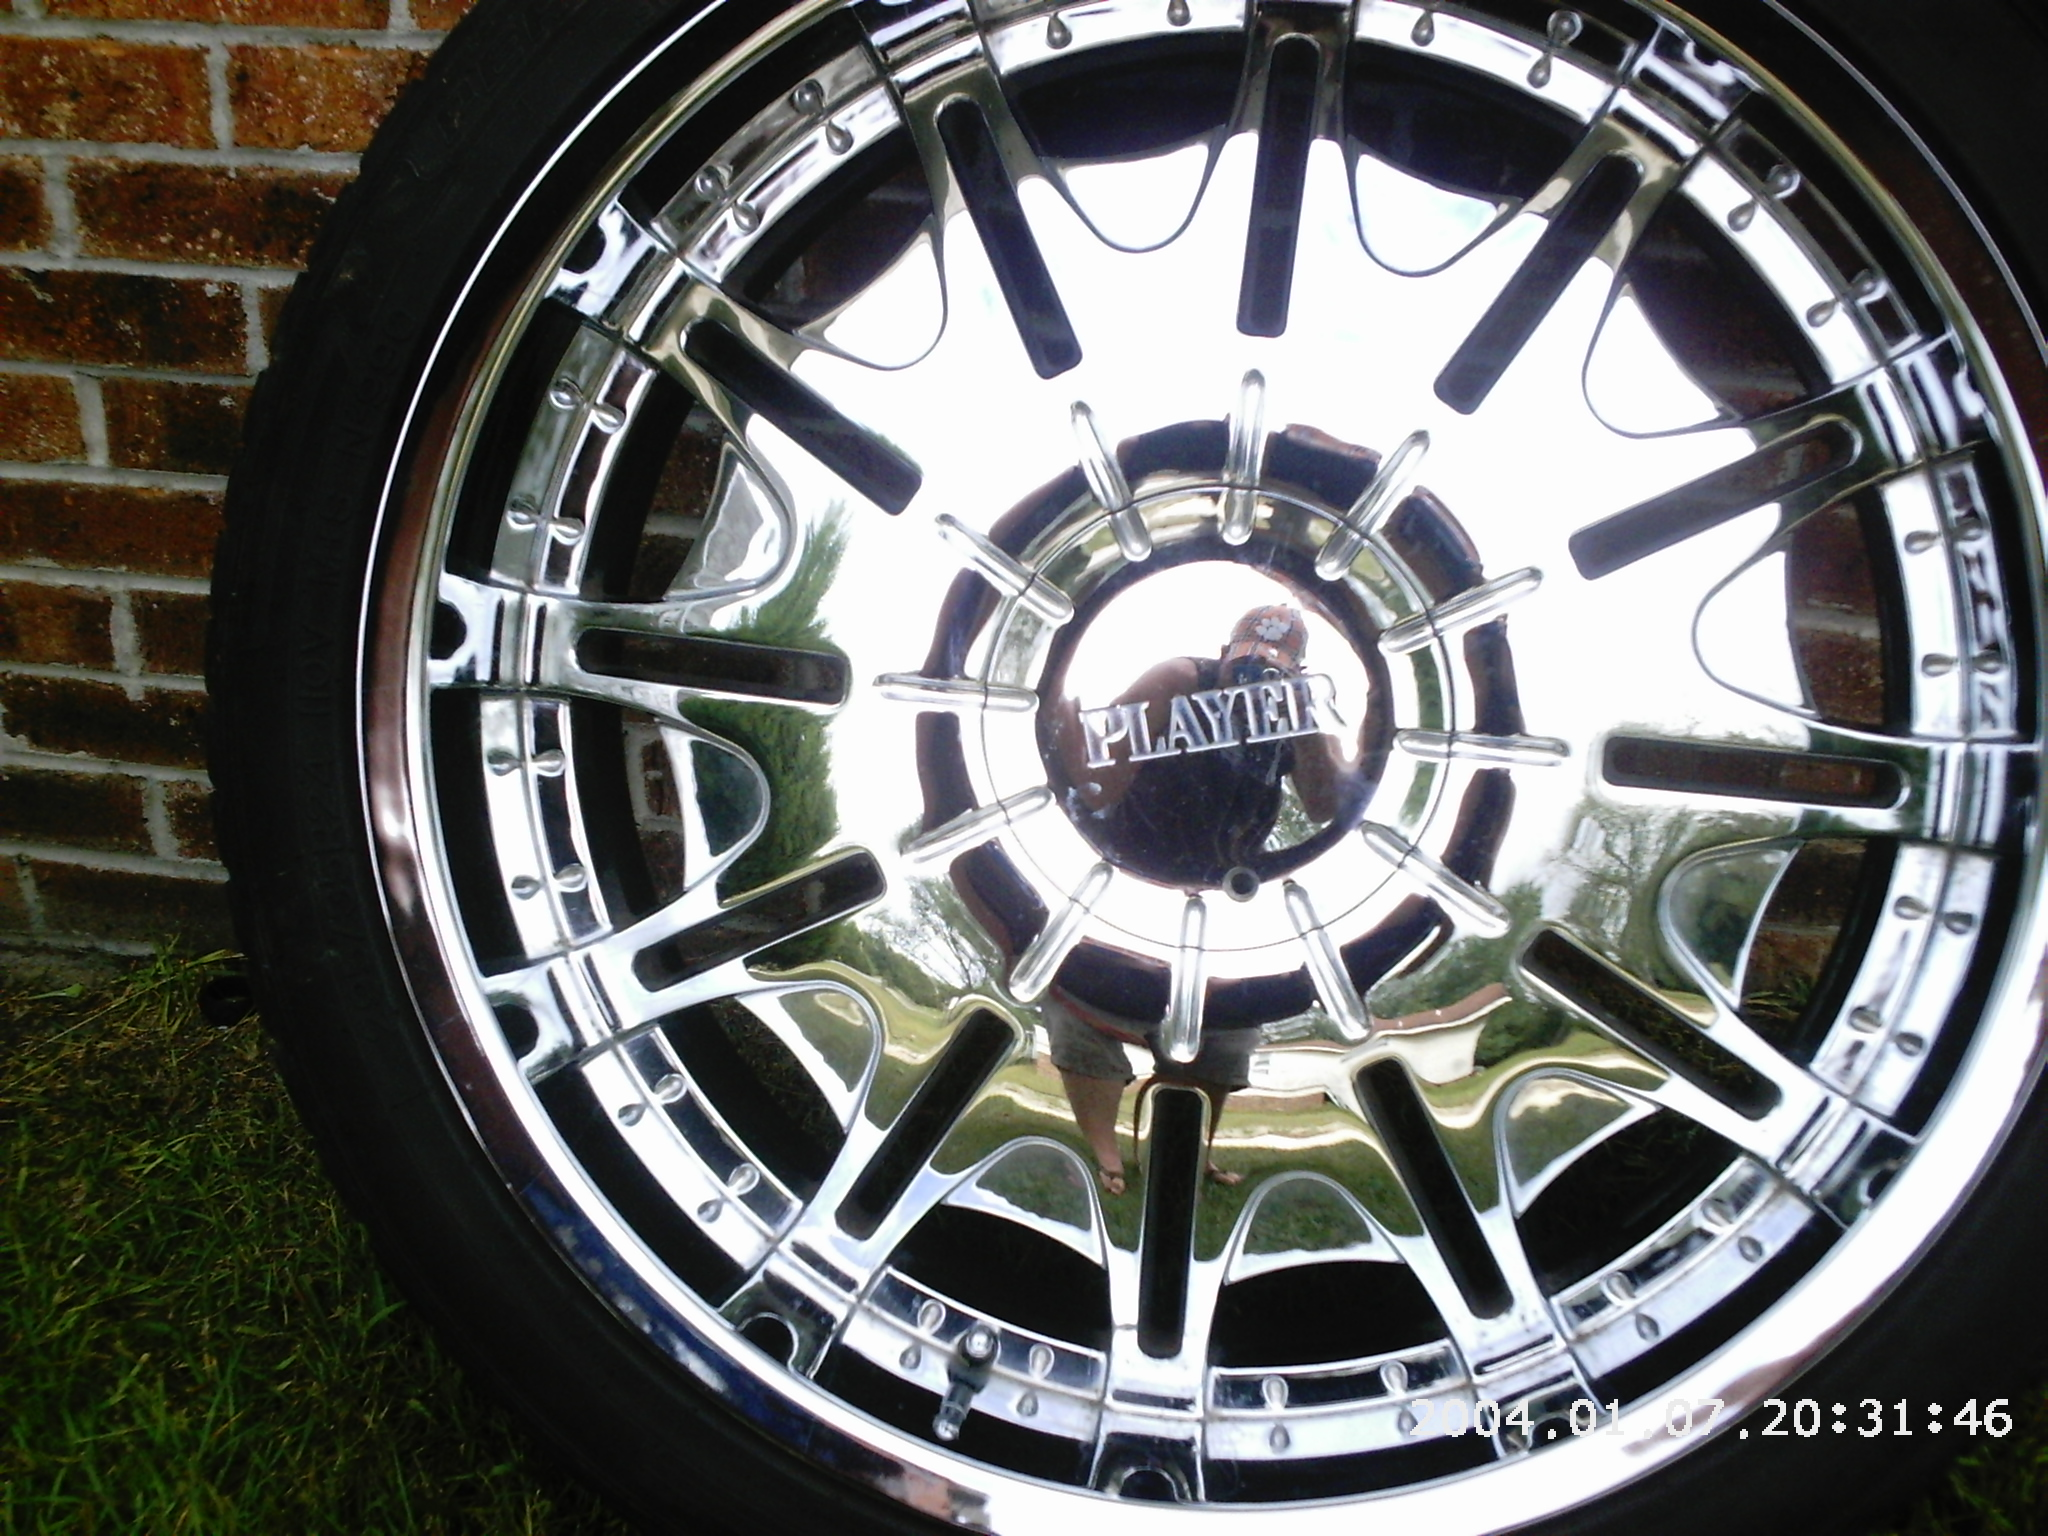 24 Inch Rims And Tires In Kgainey2s Garage Sale Lugoff Sc